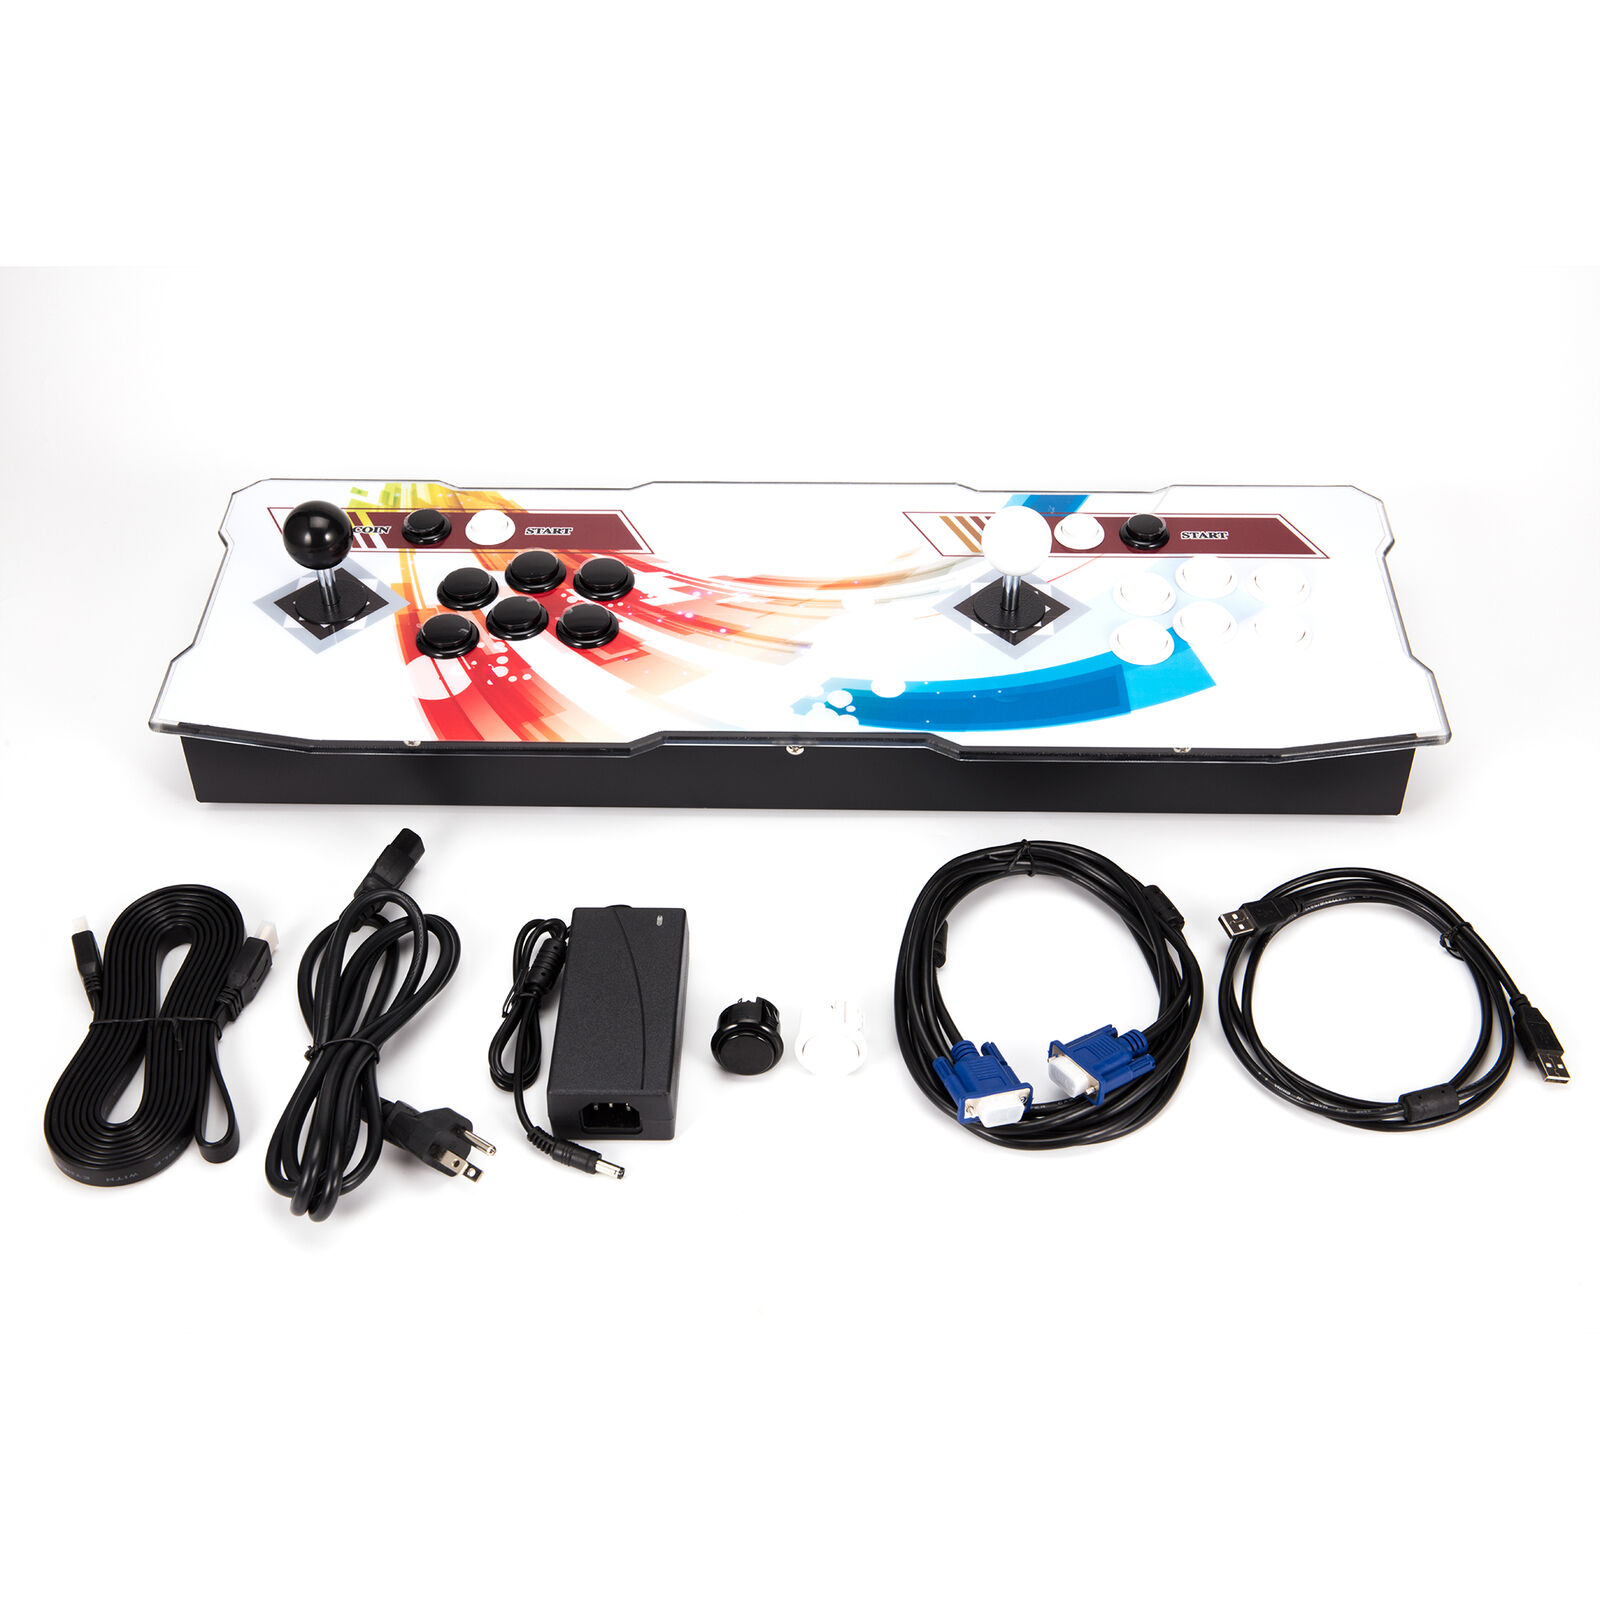 Upgraded-Pandora-039-s-Box-3D-2448-in-1-Retro-Arcade-Console-Double-Stick-Support-EU thumbnail 2